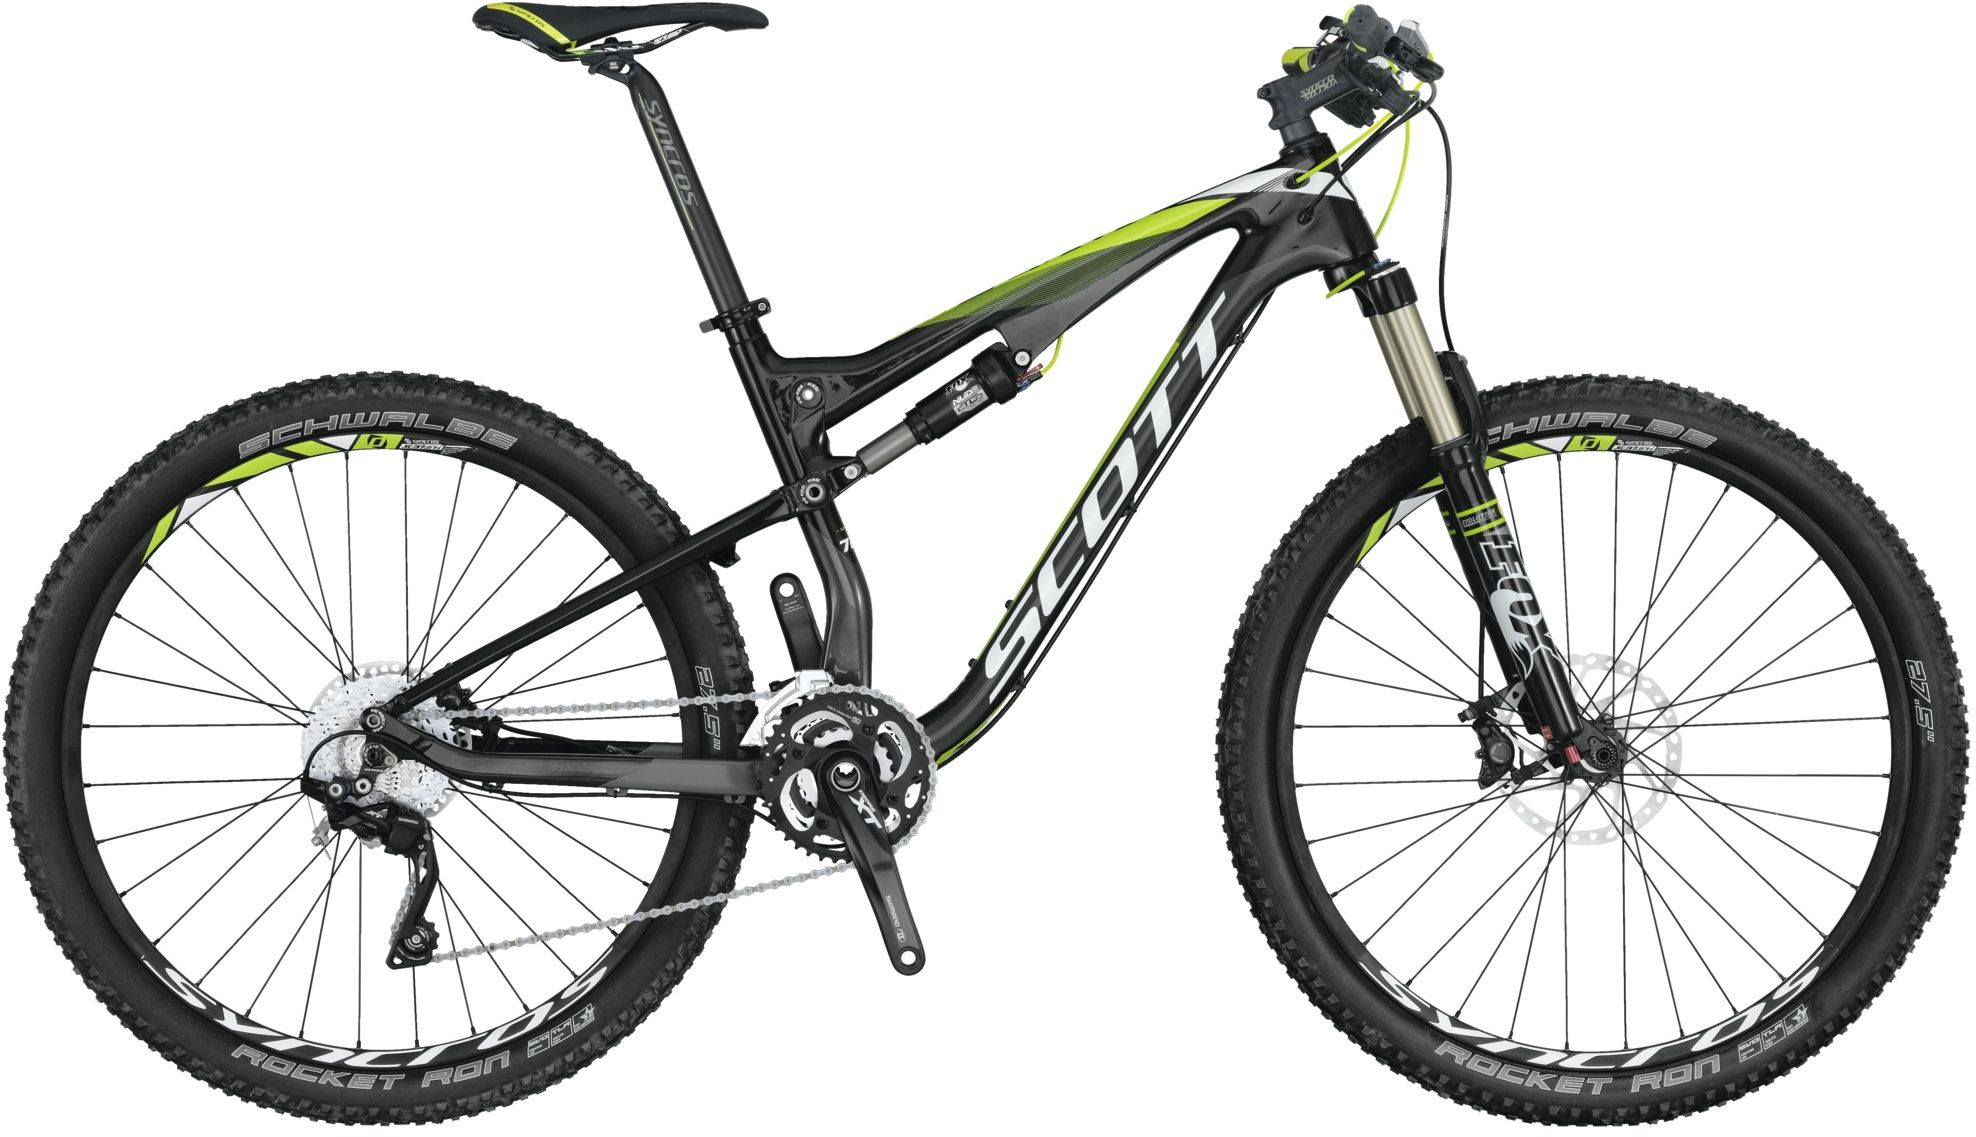 Scott Spark 720 2014 review - The Bike List